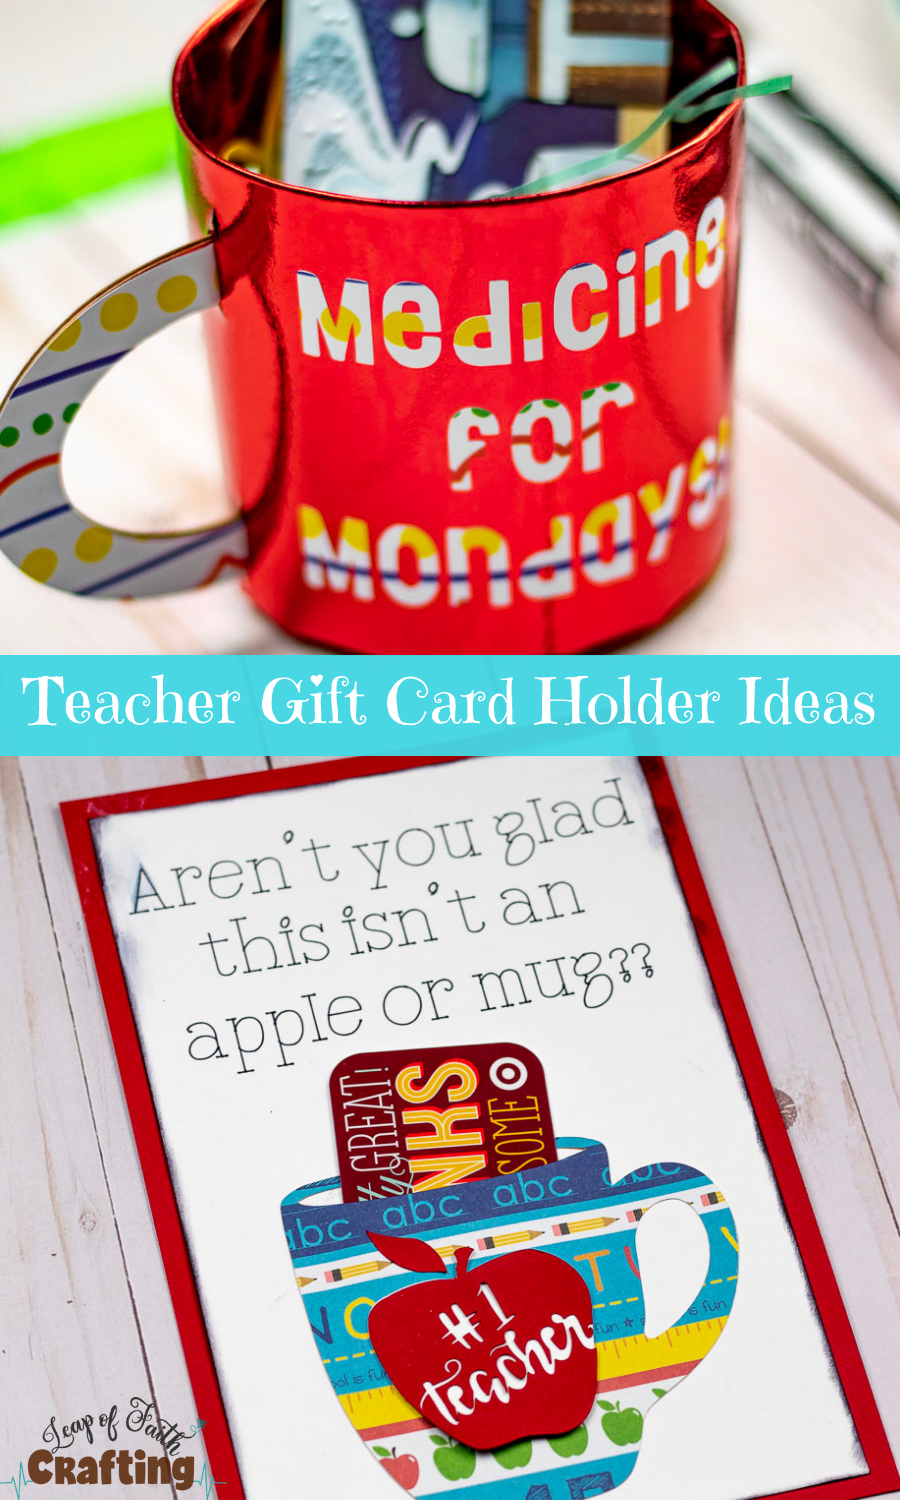 Teacher appreciation gift ideas!  Make DIY cute gift card holders with a Cricut!  Video tutorial!  #teacherappreciation #cricut